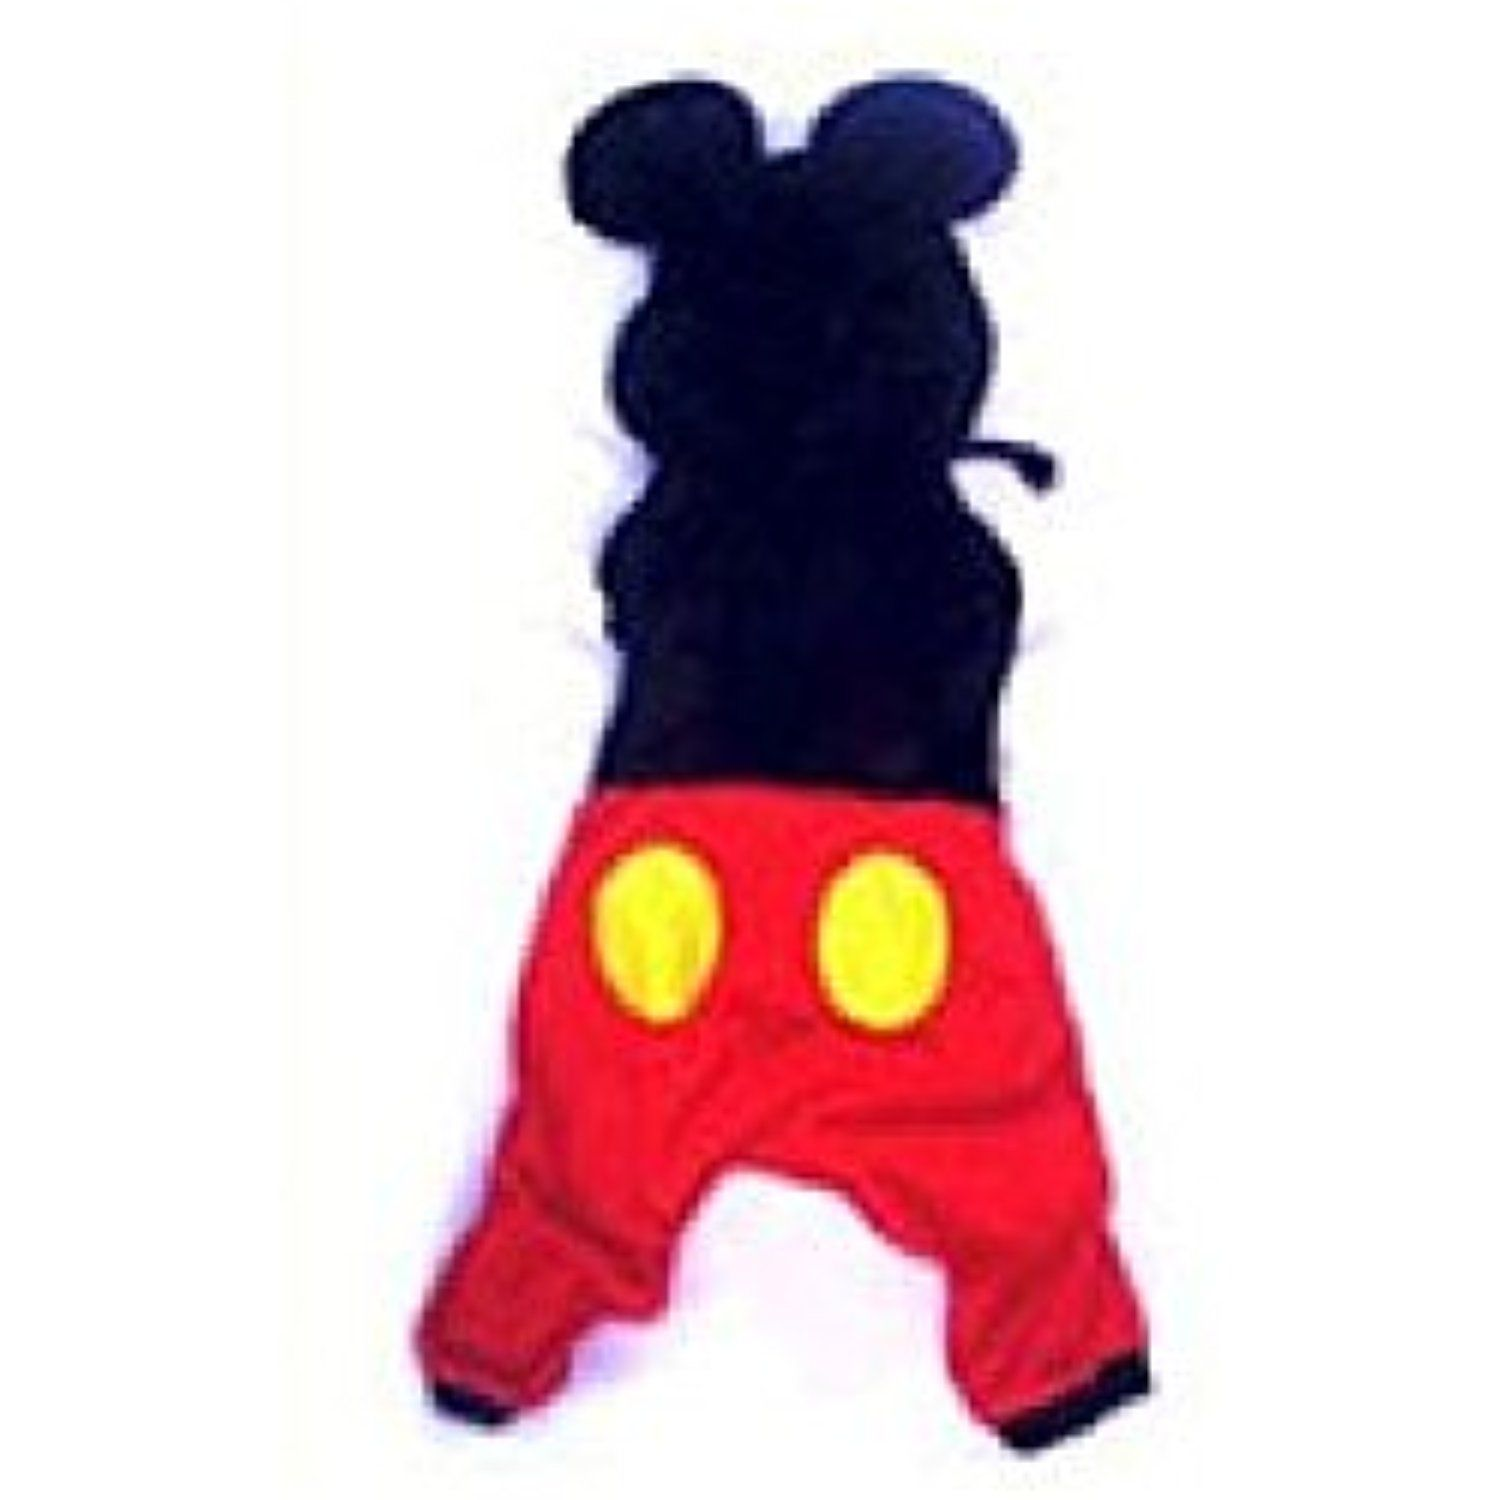 Dog costume boy mouse costumes dress your dogs as famous mickeysize